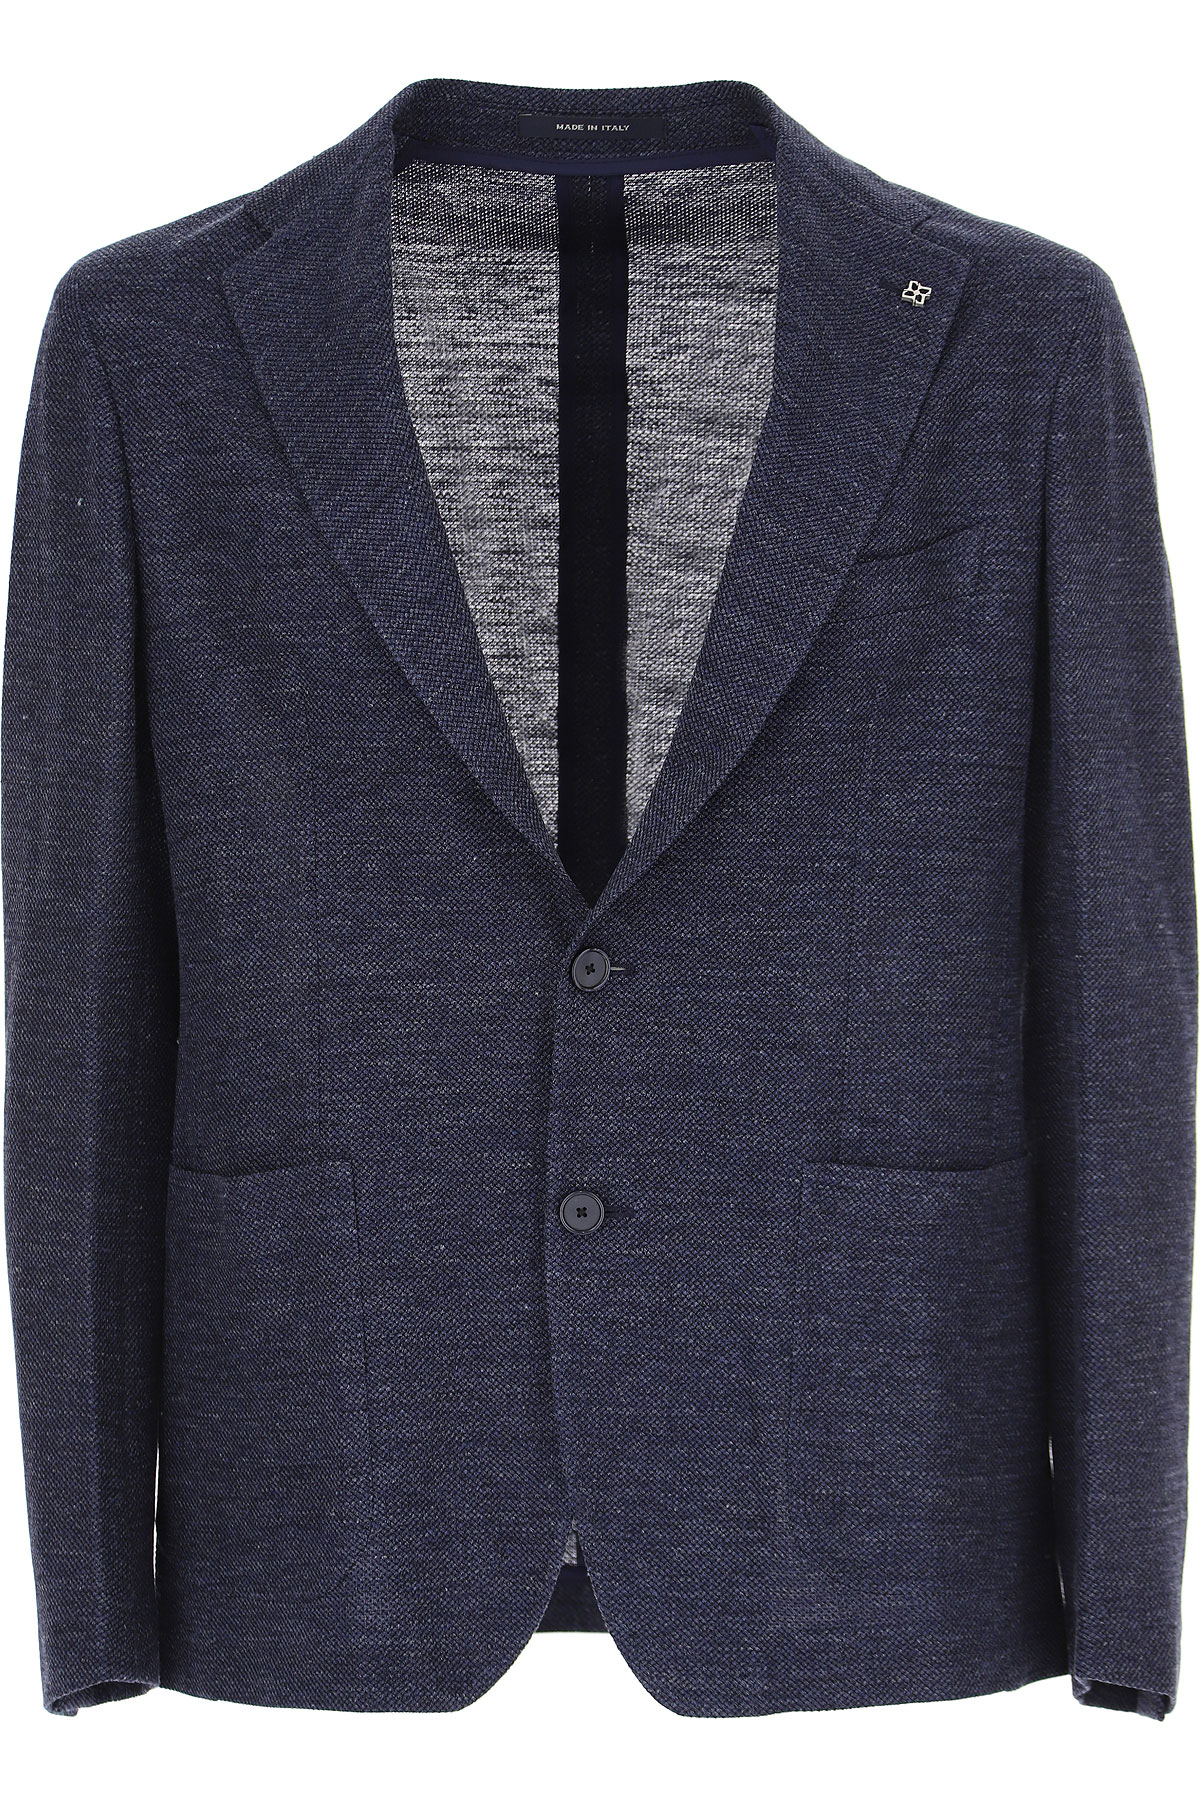 Tagliatore Blazer for Men, Sport Coat On Sale, Denim Blue, linen, 2019, L M S XL XXL